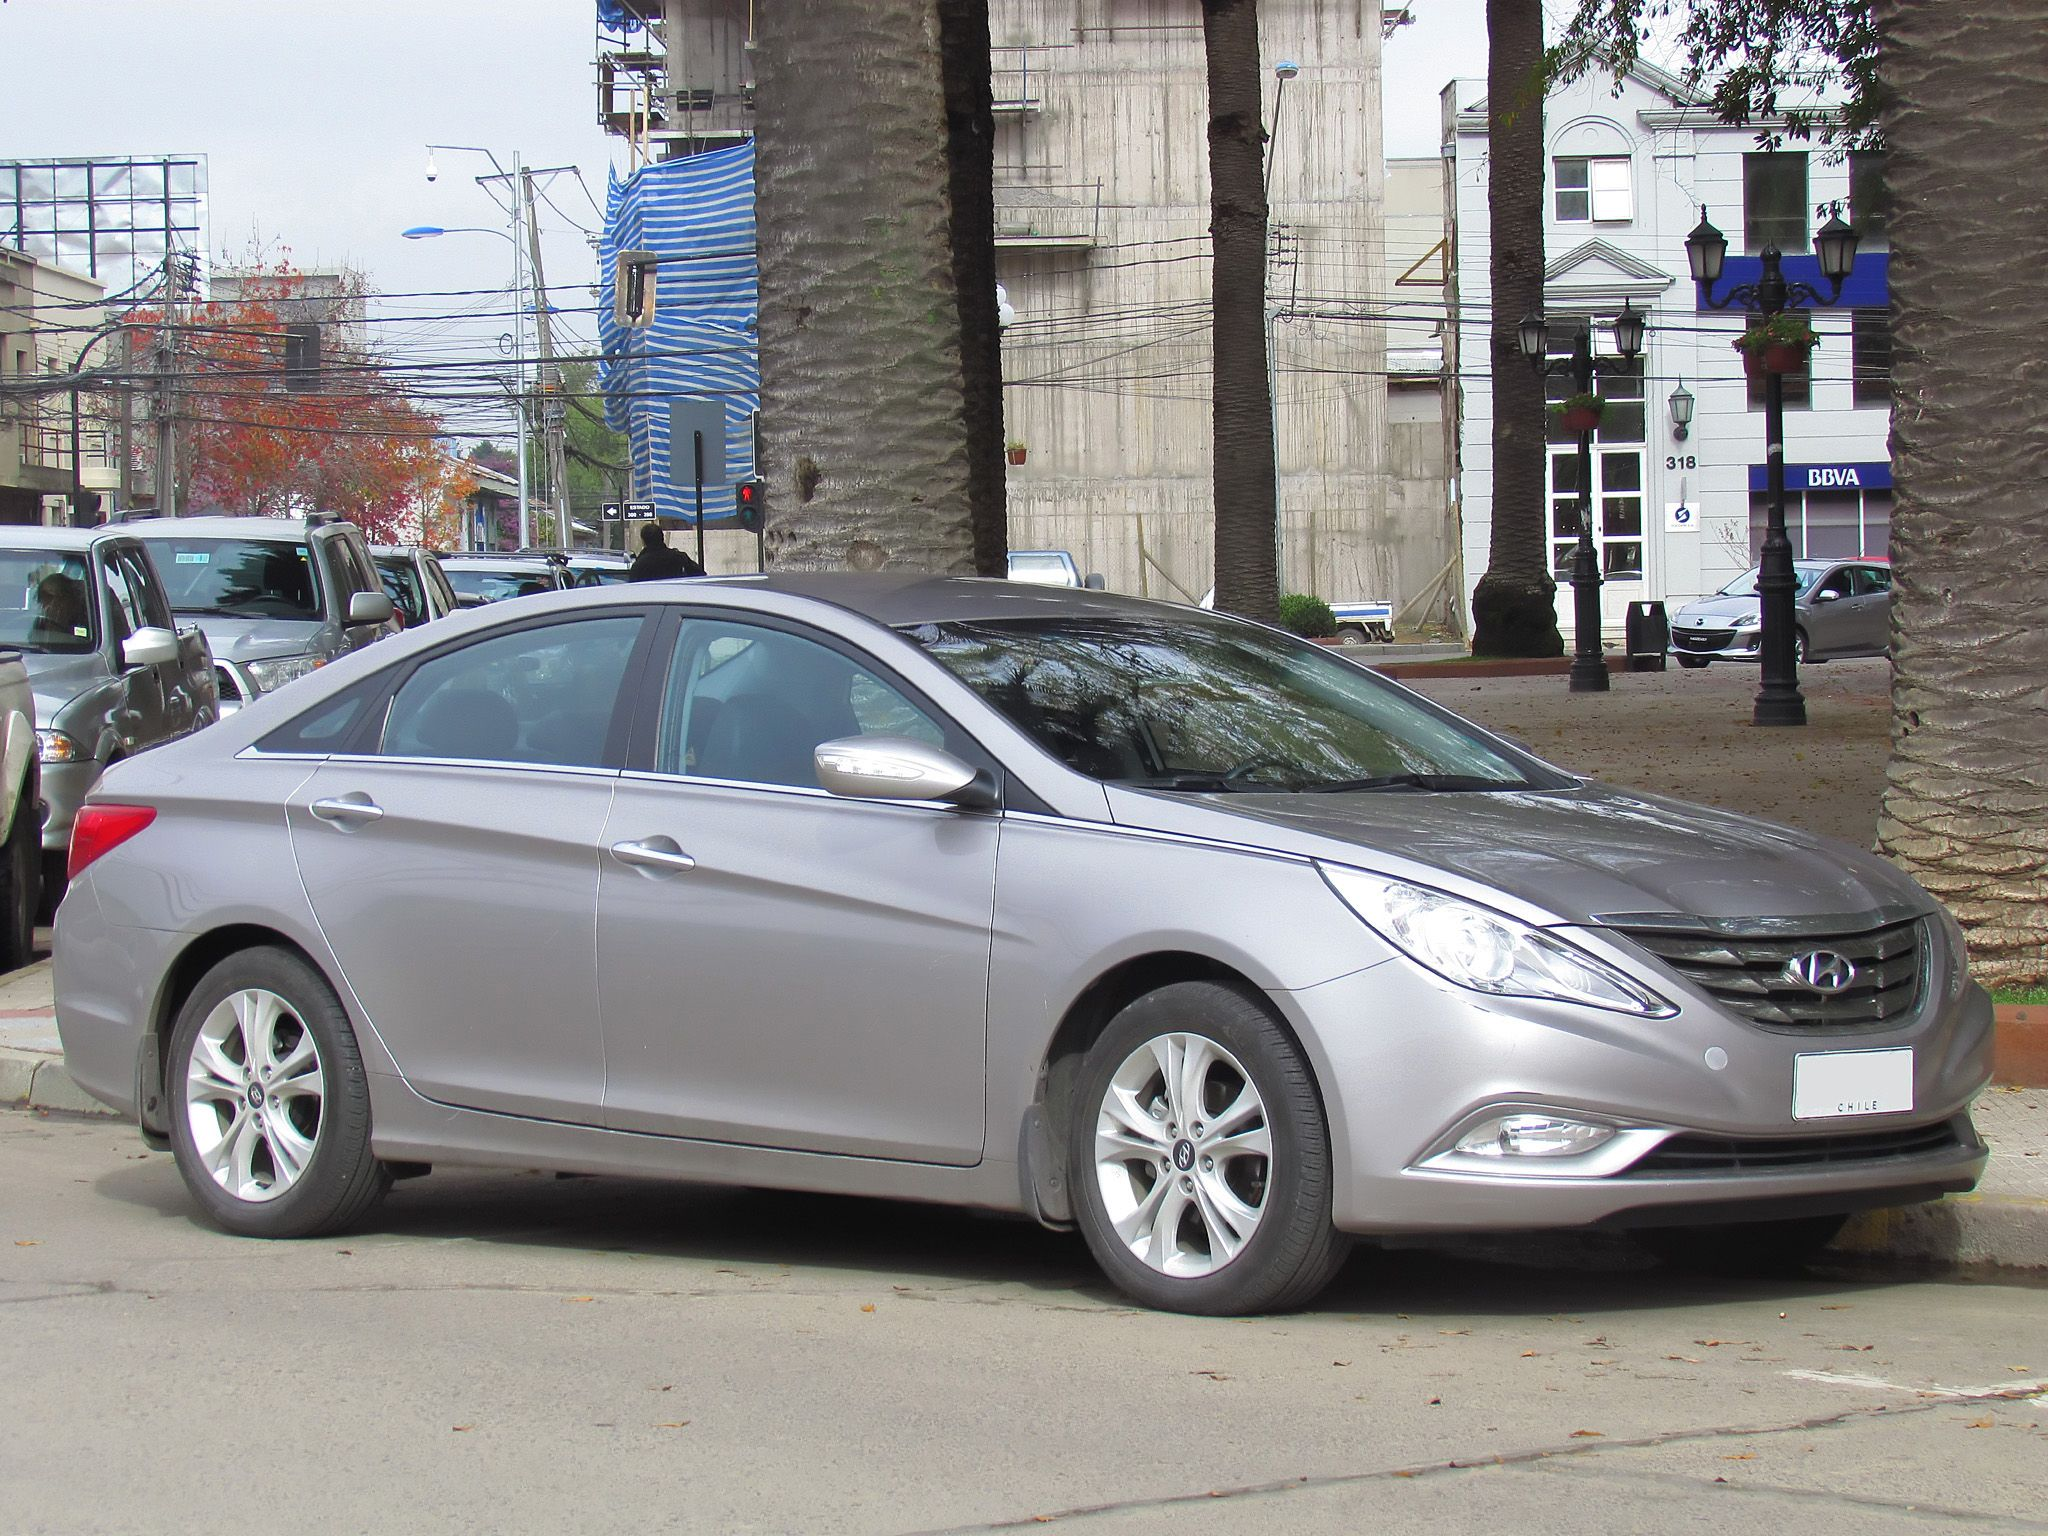 "<p>""I bought a <a href=""https://www.yourmechanic.com/scheduled-maintenance/hyundai-sonata/"">Hyundai Sonata</a> that had no history of accidents from a used car lot. The car started <a href=""https://www.yourmechanic.com/services/oil-fluid-leak-inspection"">leaking fluid</a>, so I took it to a dealership for a warranty repair. I was told the <a href=""https://www.yourmechanic.com/services/windshield-wiper-washer-system-inspection"">windshield fluid reservoir</a> was cracked – and that the front bumper that had been replaced, the <a href=""https://www.yourmechanic.com/article/symptoms-of-a-bad-or-failing-radiator"">radiator</a> was damaged, the frame was bent, plus other evidence that the car had been in a crash. What's more, the car had been driven without any coolant, causing it to <a href=""https://www.yourmechanic.com/services/car-is-overheating-inspection"">overheat</a> and damage the engine.</p><p>Since all these problems were caused by an accident, the warranty was suddenly void, and I had to pay to fix everything. Take it from me: a 'clean' <a href=""https://www.yourmechanic.com/article/how-to-check-car-history-by-cheryl-knight"">vehicle history report</a> isn't a substitute for an inspection.""</p><p><em data-redactor-tag=""em"" data-verified=""redactor"">-Abby W., Arlington, VA</em></p>"